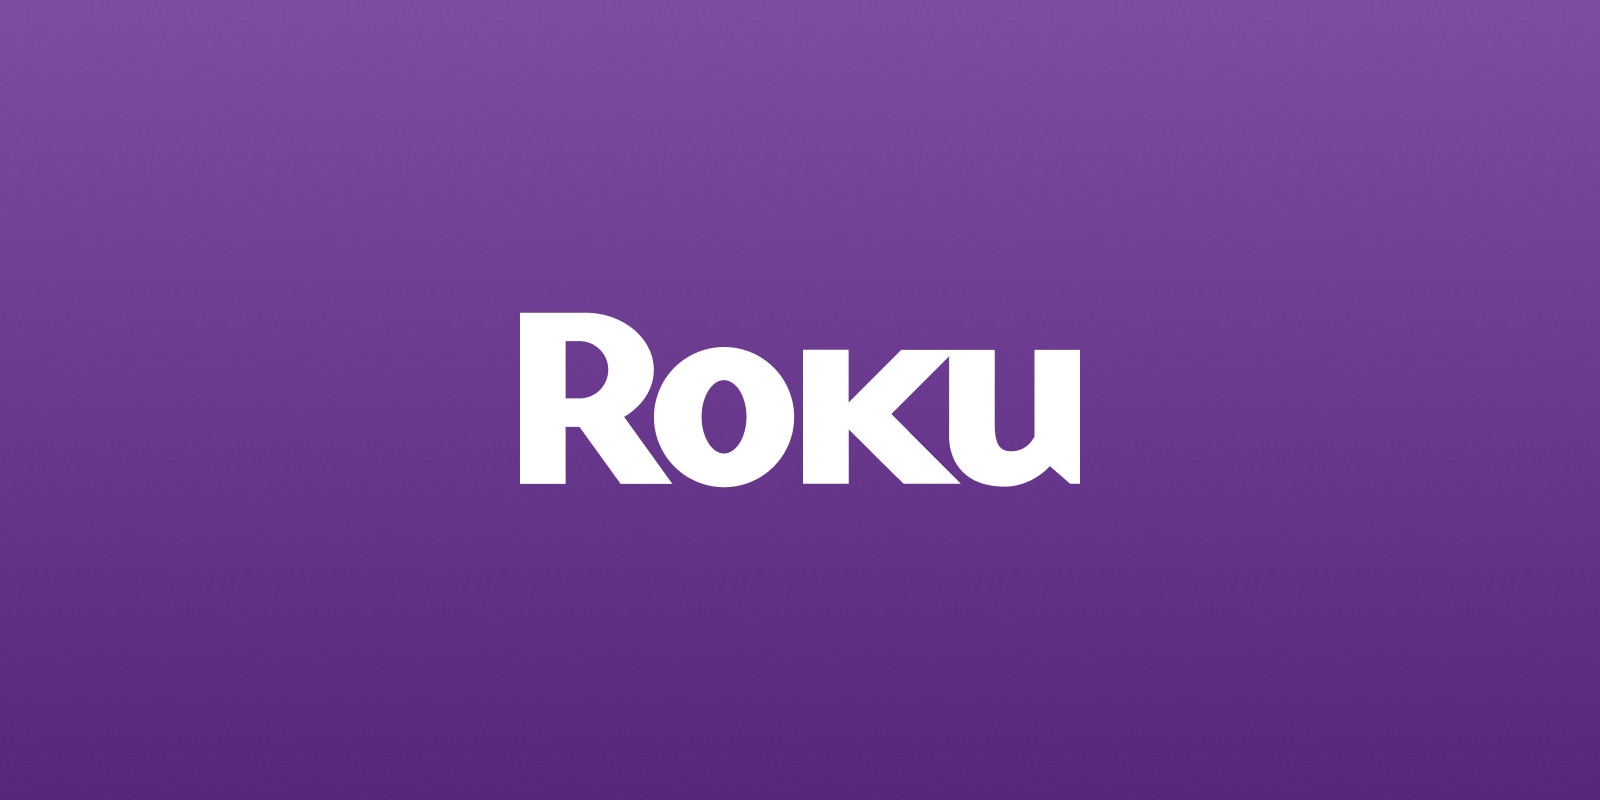 Image of Roku